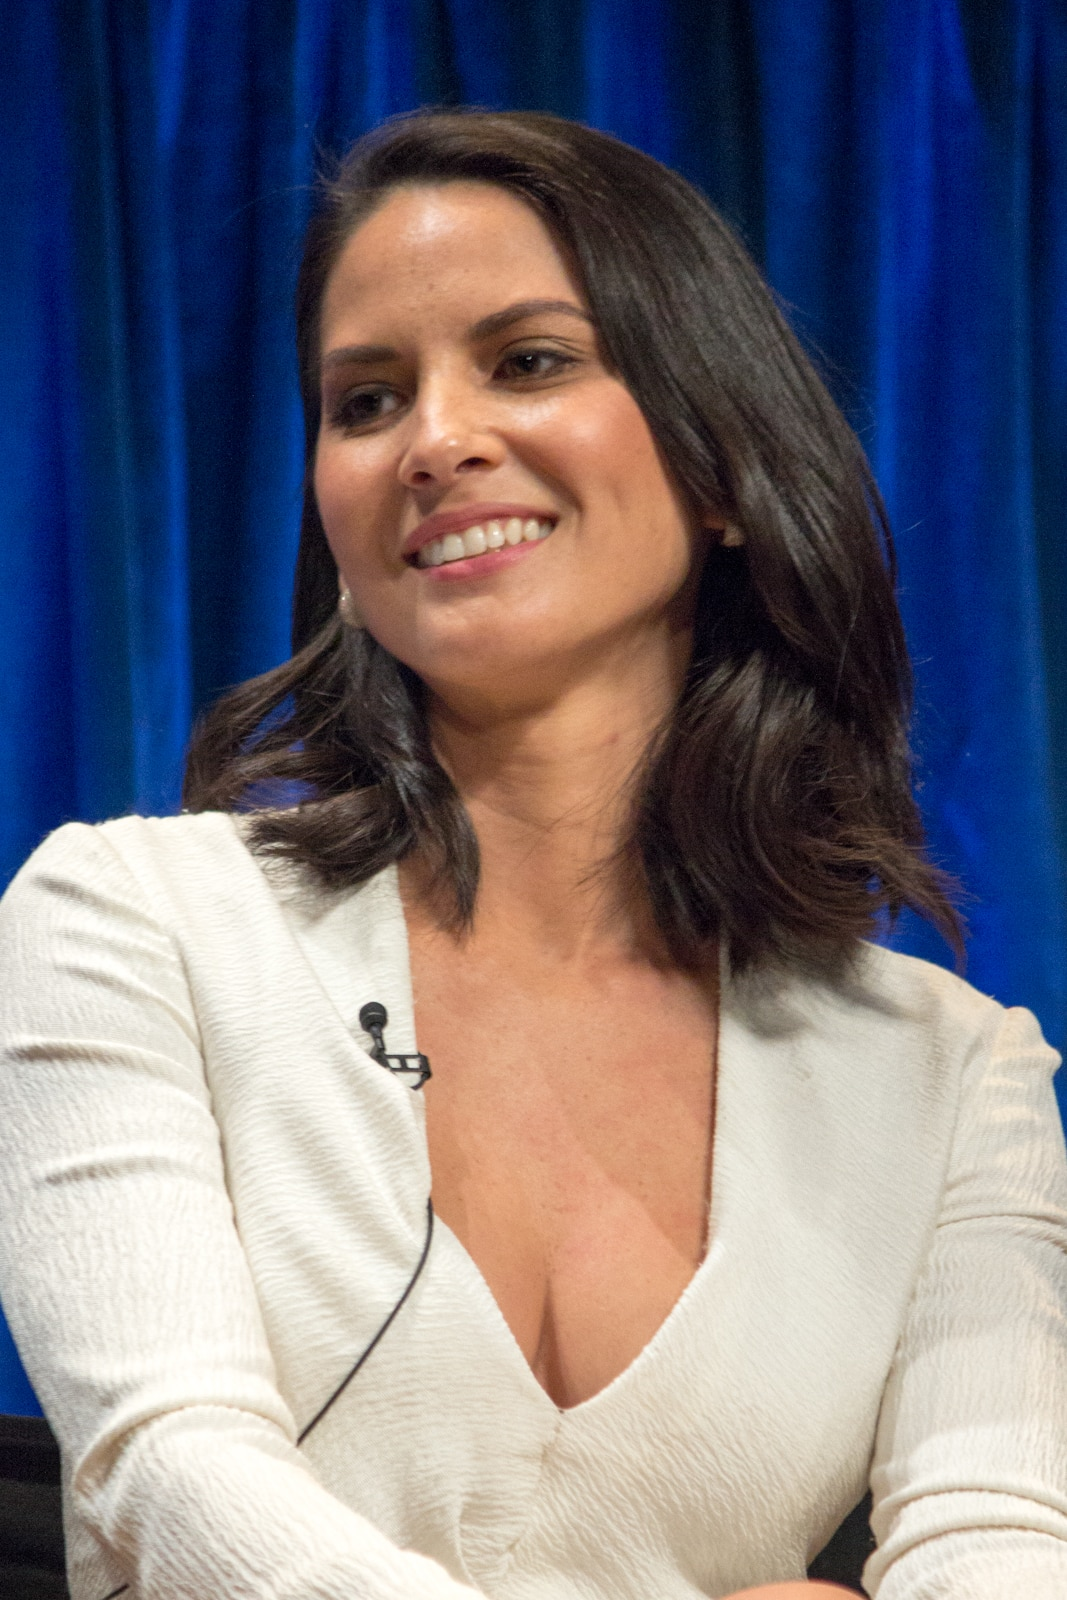 Olivia Munnin white top with blue background